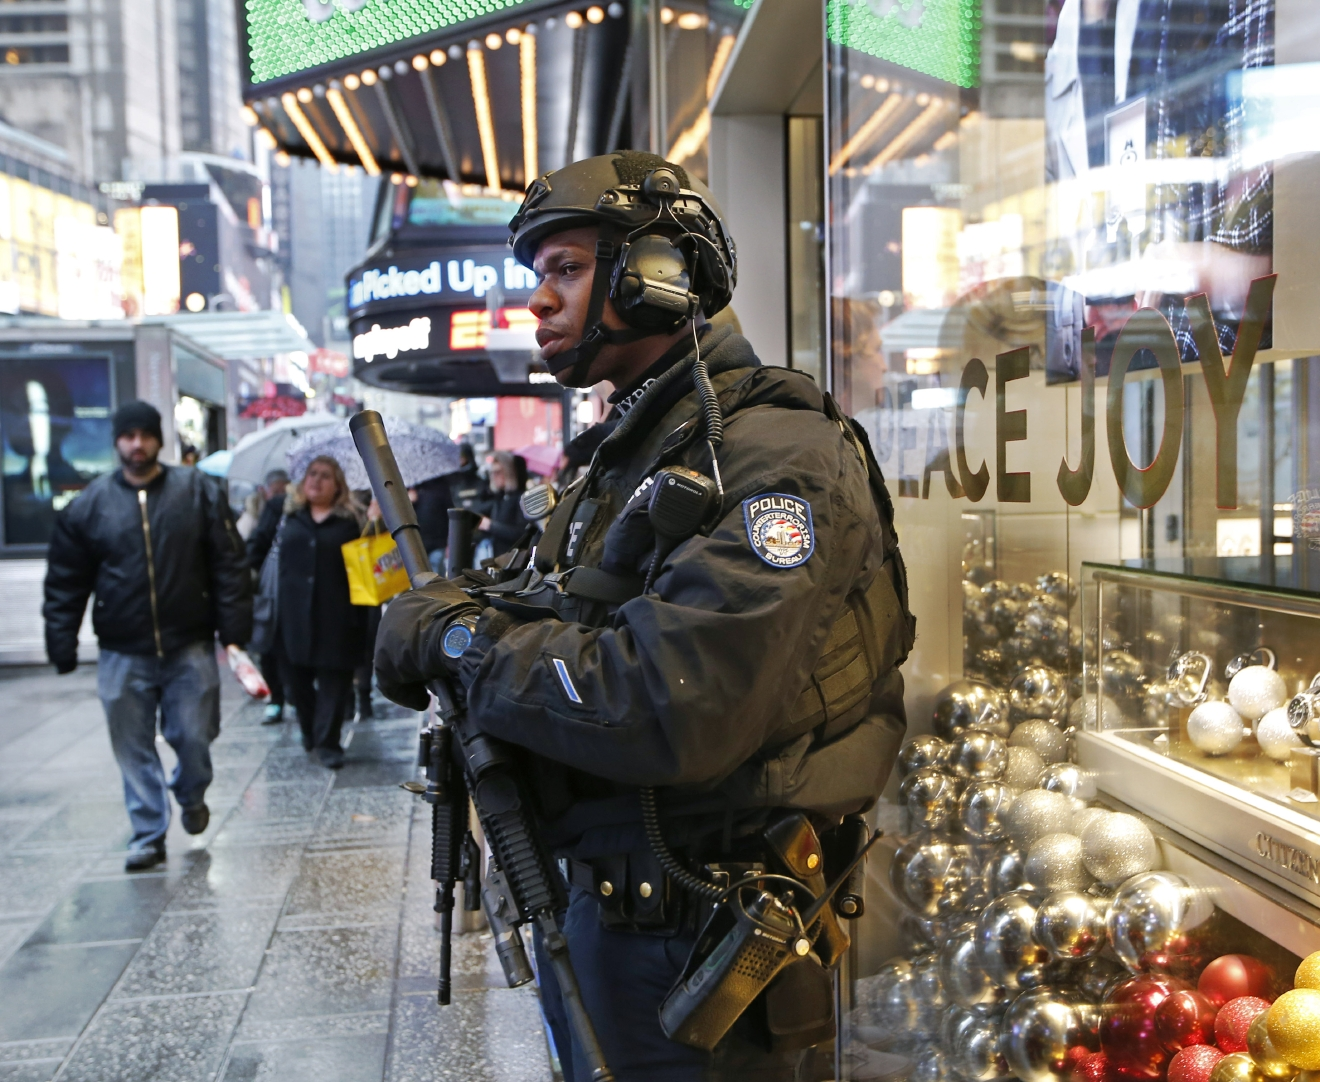 A heavily armed counterterrorism officer takes shelter beneath an overhang above a store in Times Square, Thursday, Dec. 29, 2016, in New York. The city's police are once again saying they are up to the task of protecting the huge crowds that are expected to gather in and around Times Square for New York City's massive New Year's Eve celebration. (AP Photo/Kathy Willens)